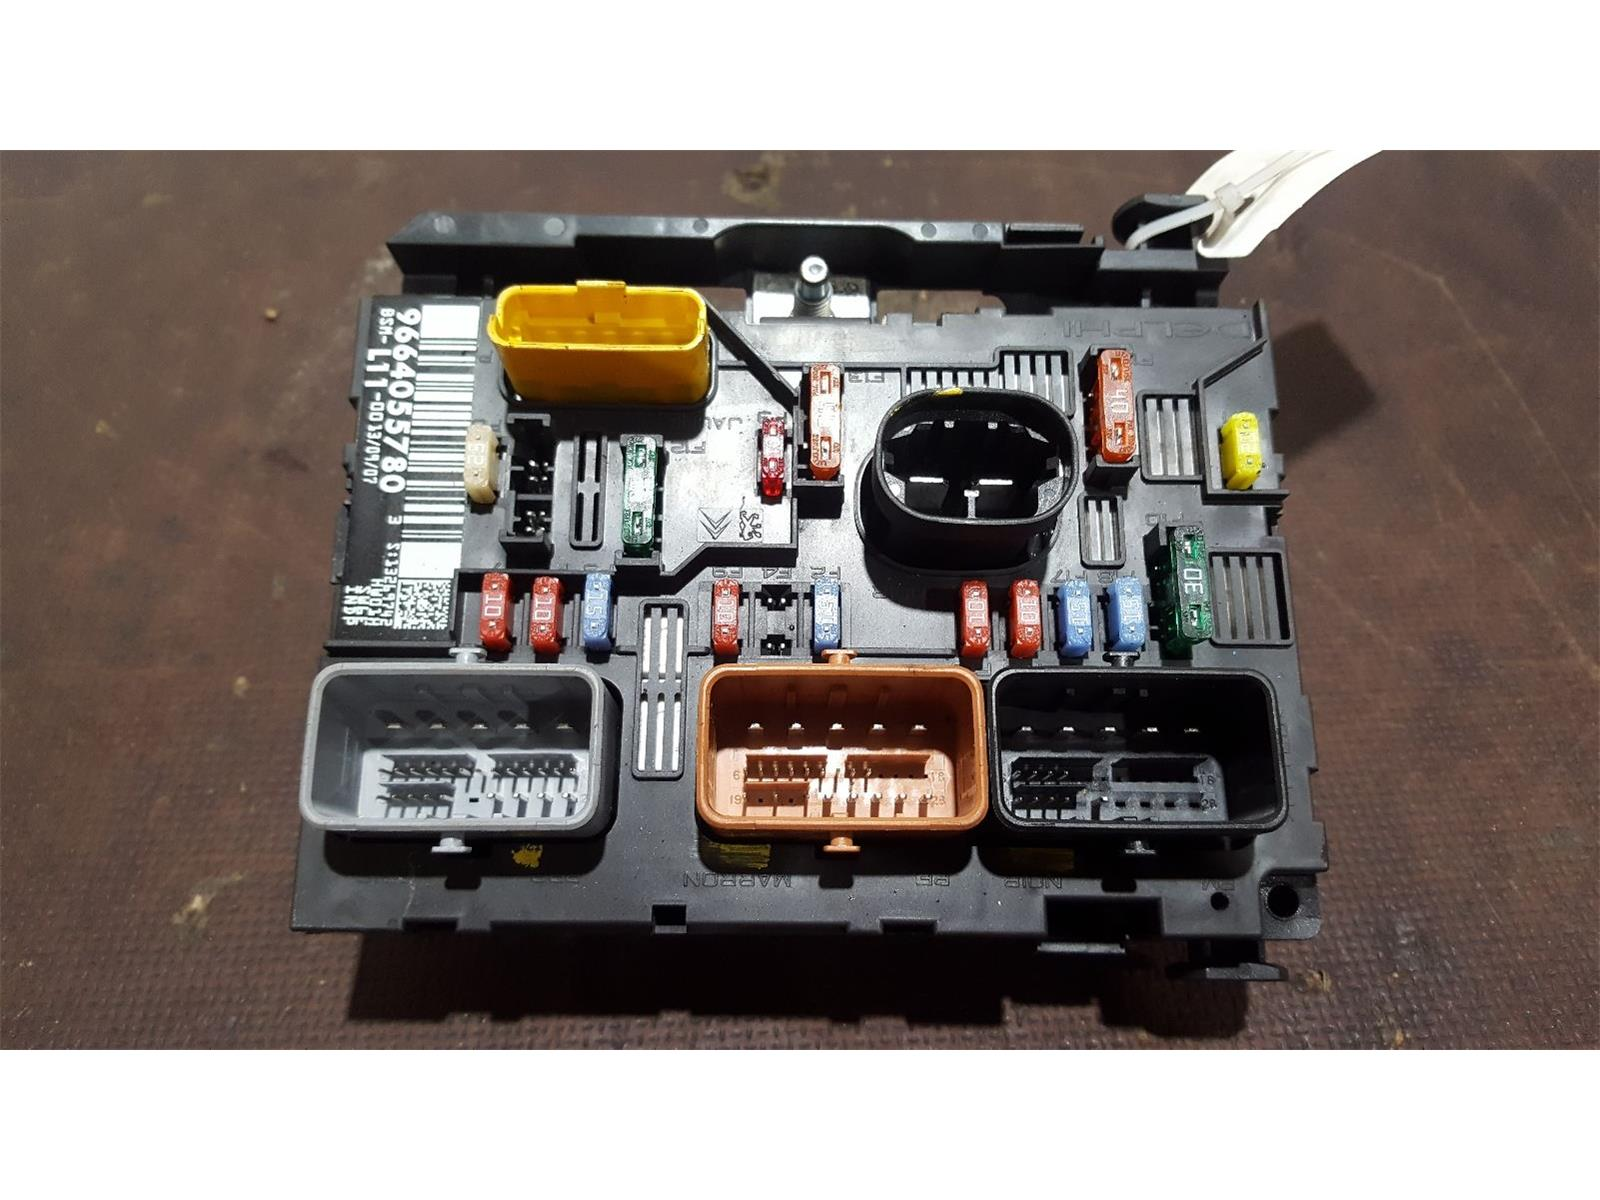 battery for hummer h2 fuse box best wiring librarypeugeot 207 2006 to 2009 fuse box bsi bmi bcm body control unit